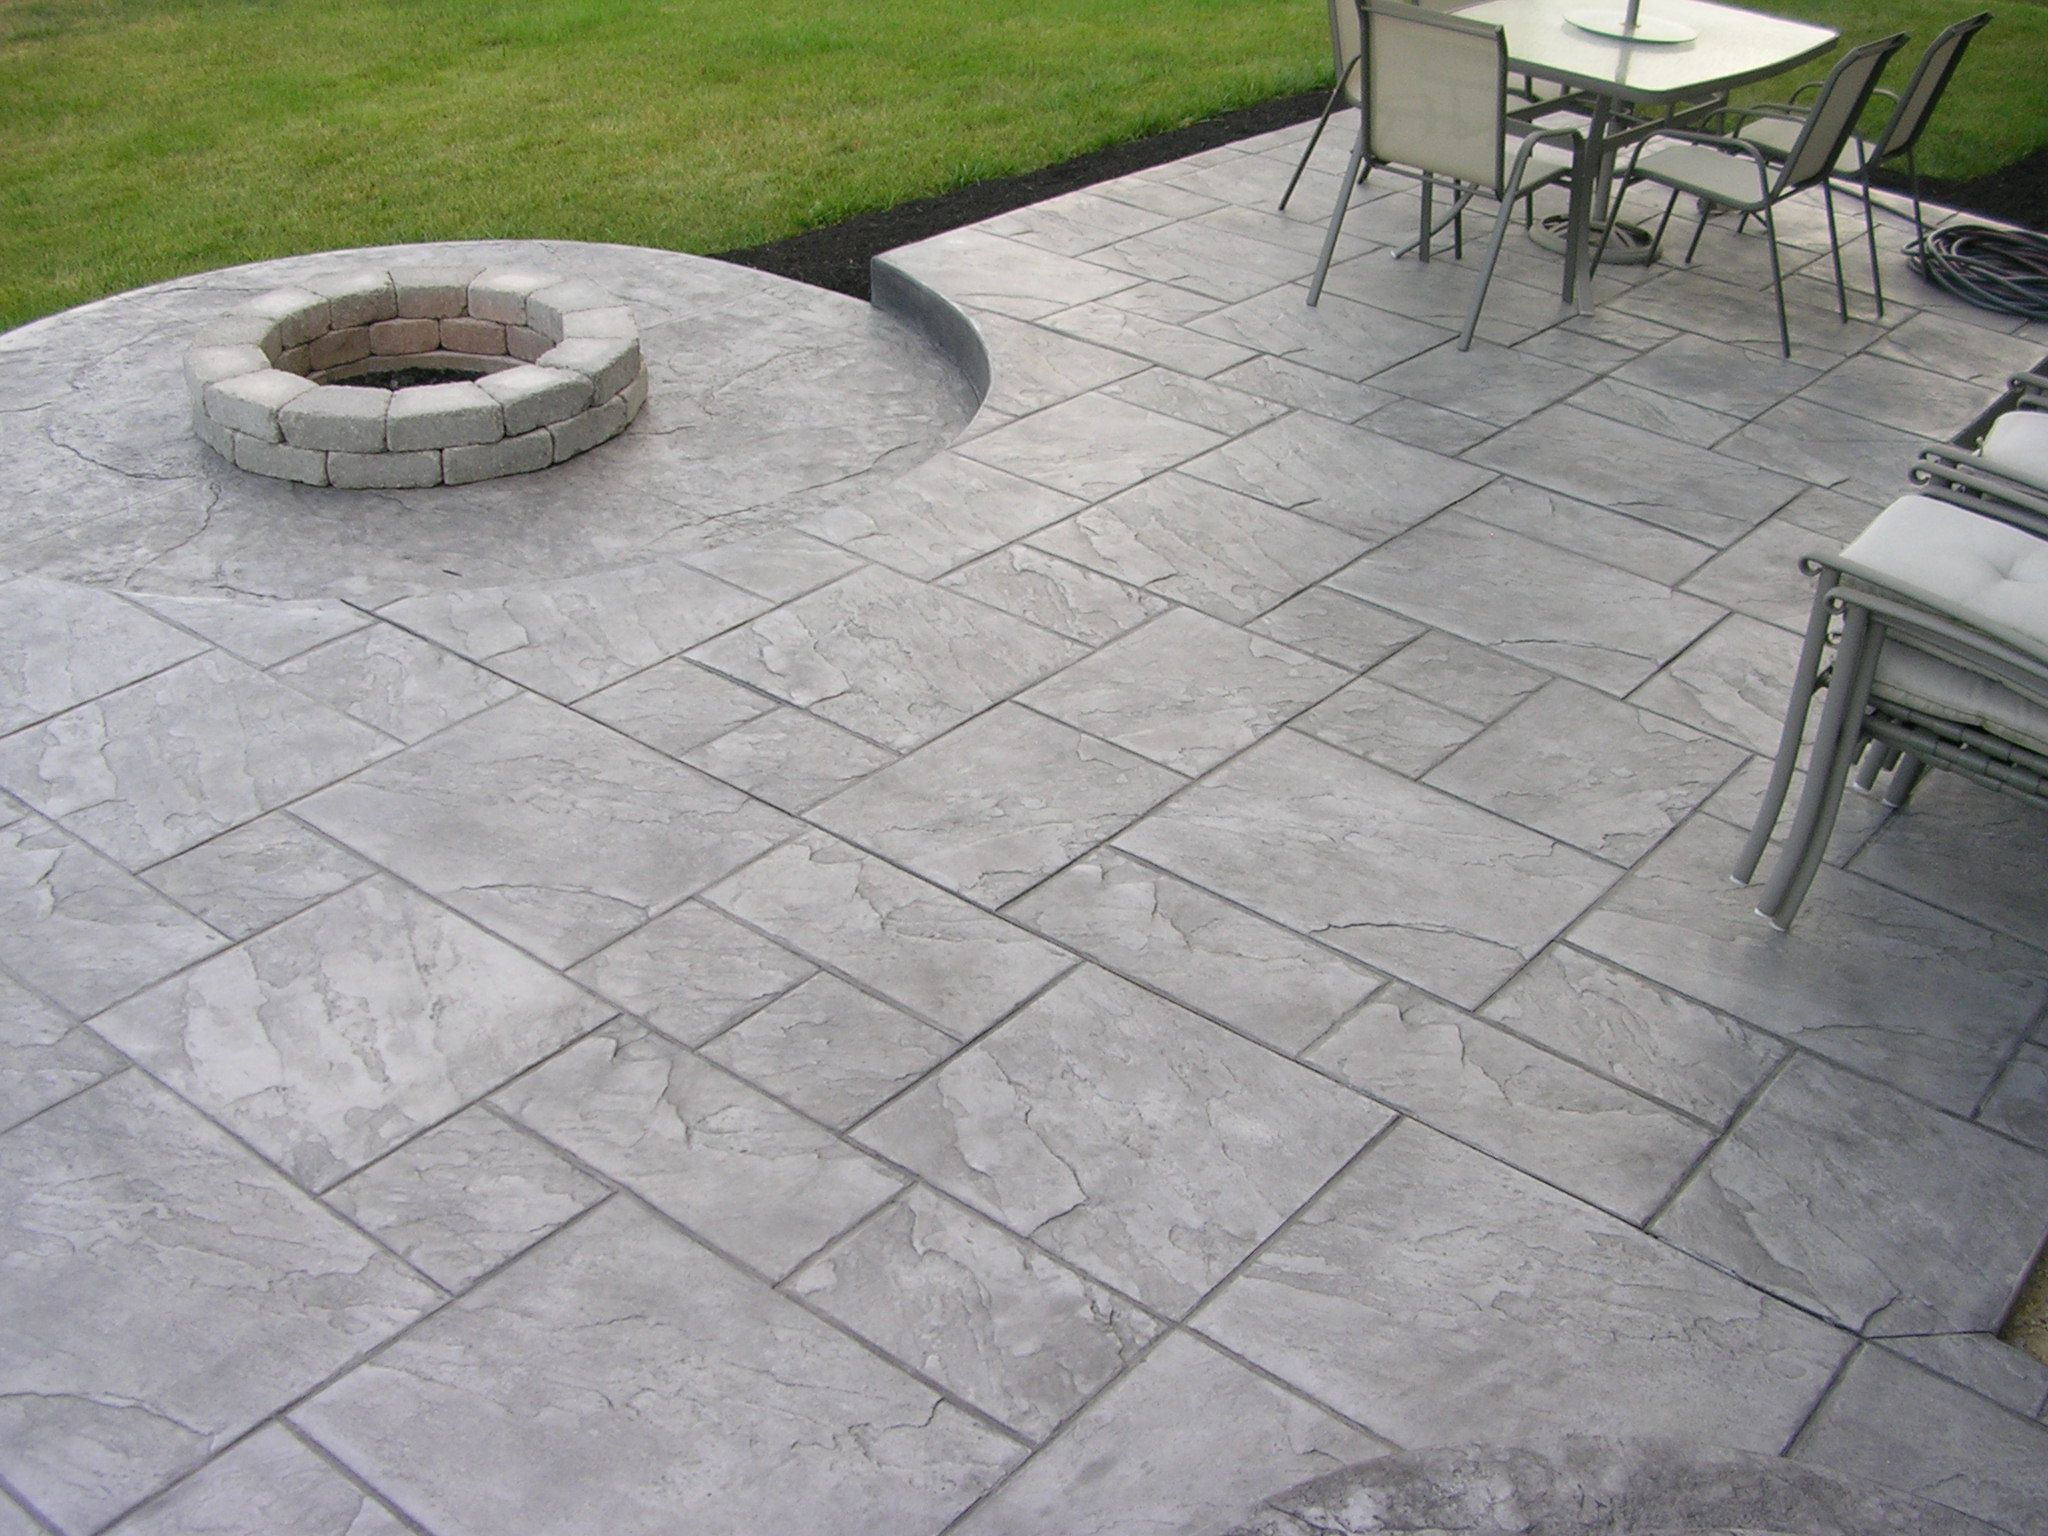 Beautiful outdoor patio flooring options include stone tiles